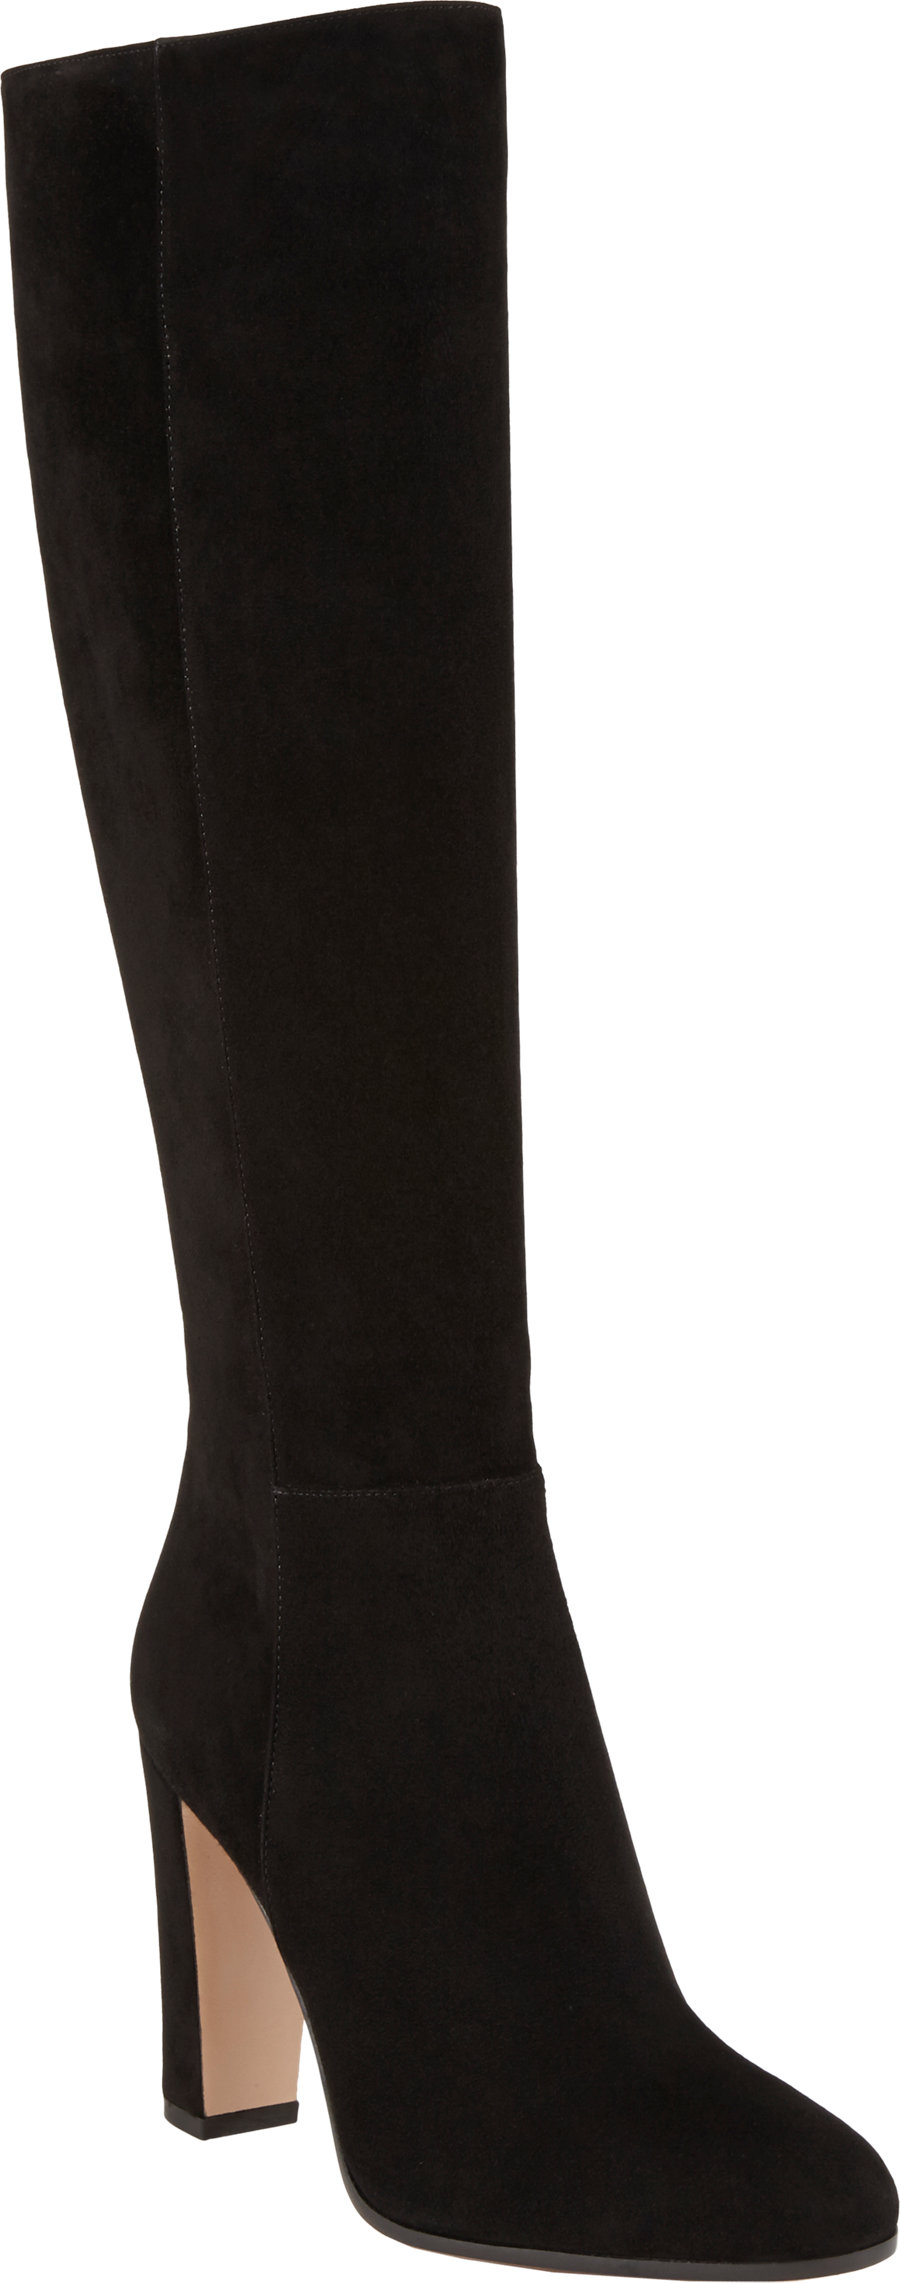 Sergio Rossi side zip knee boots cheap sale pay with visa sale sast eastbay online clearance cheapest price pFv4gvj